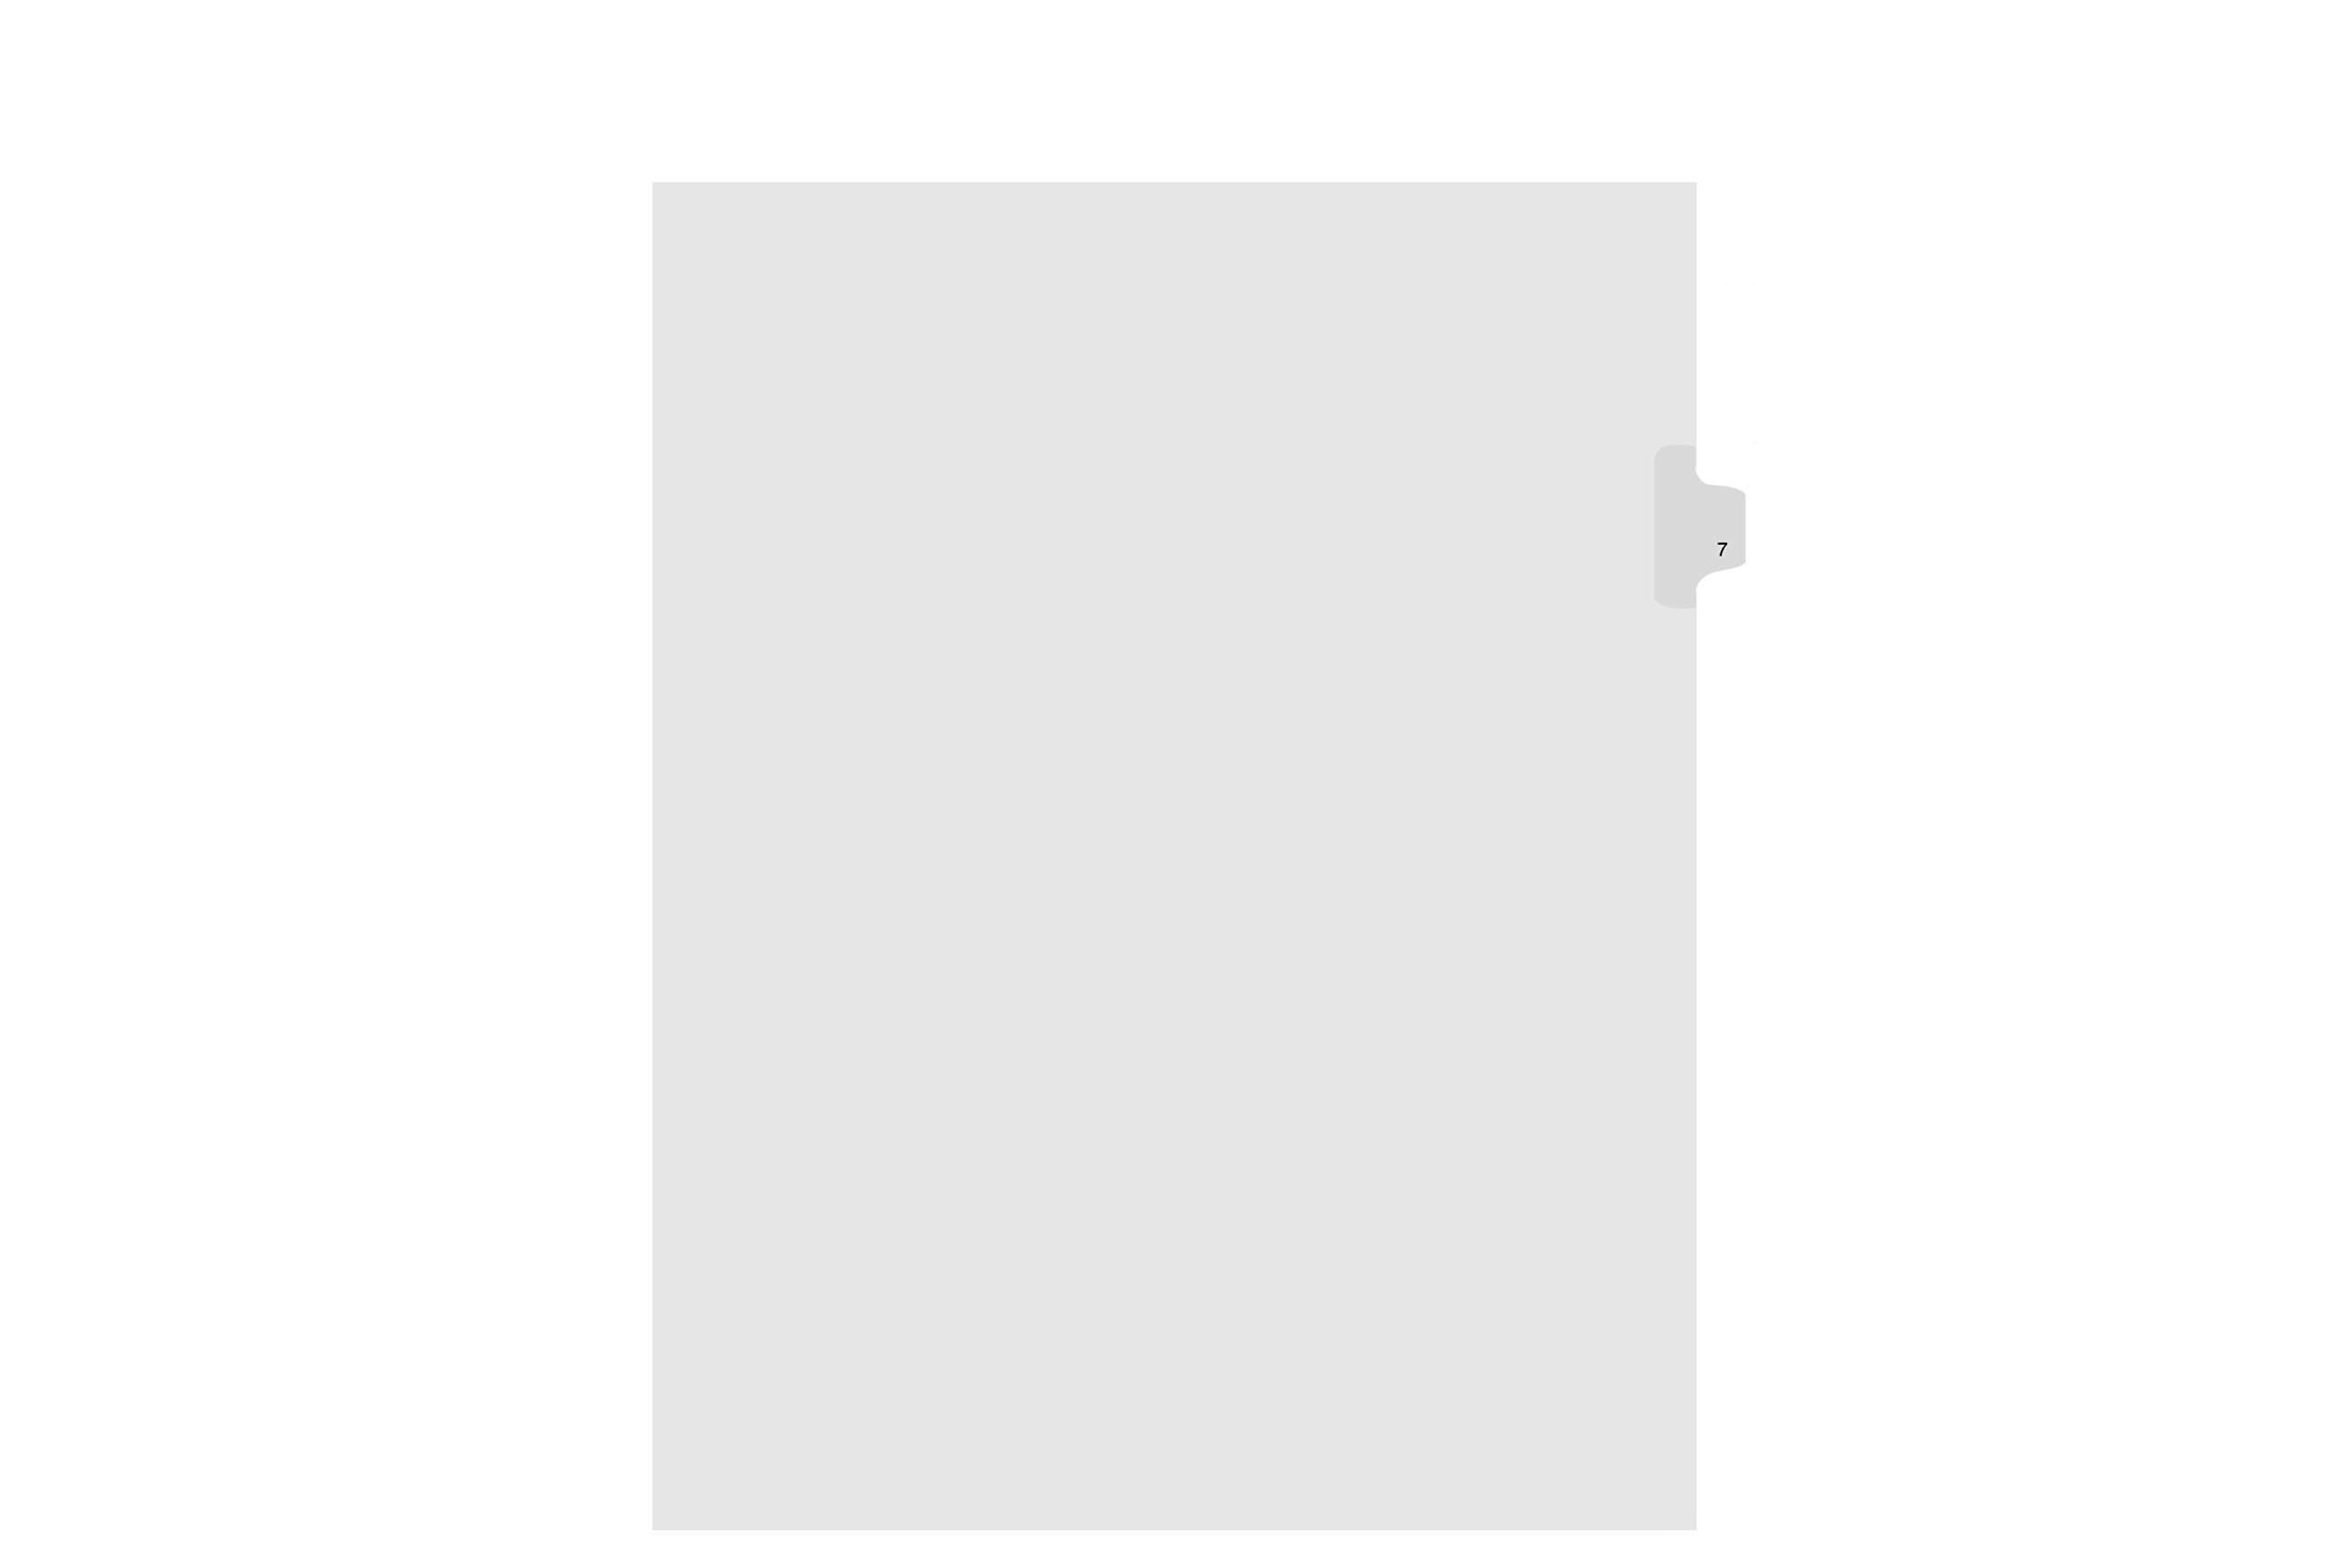 Kleer-Fax Letter Size Individually Numbered 1/25th Cut Side Tab Index Dividers, 25 Sheets per Pack, White, Number 7 (91007)